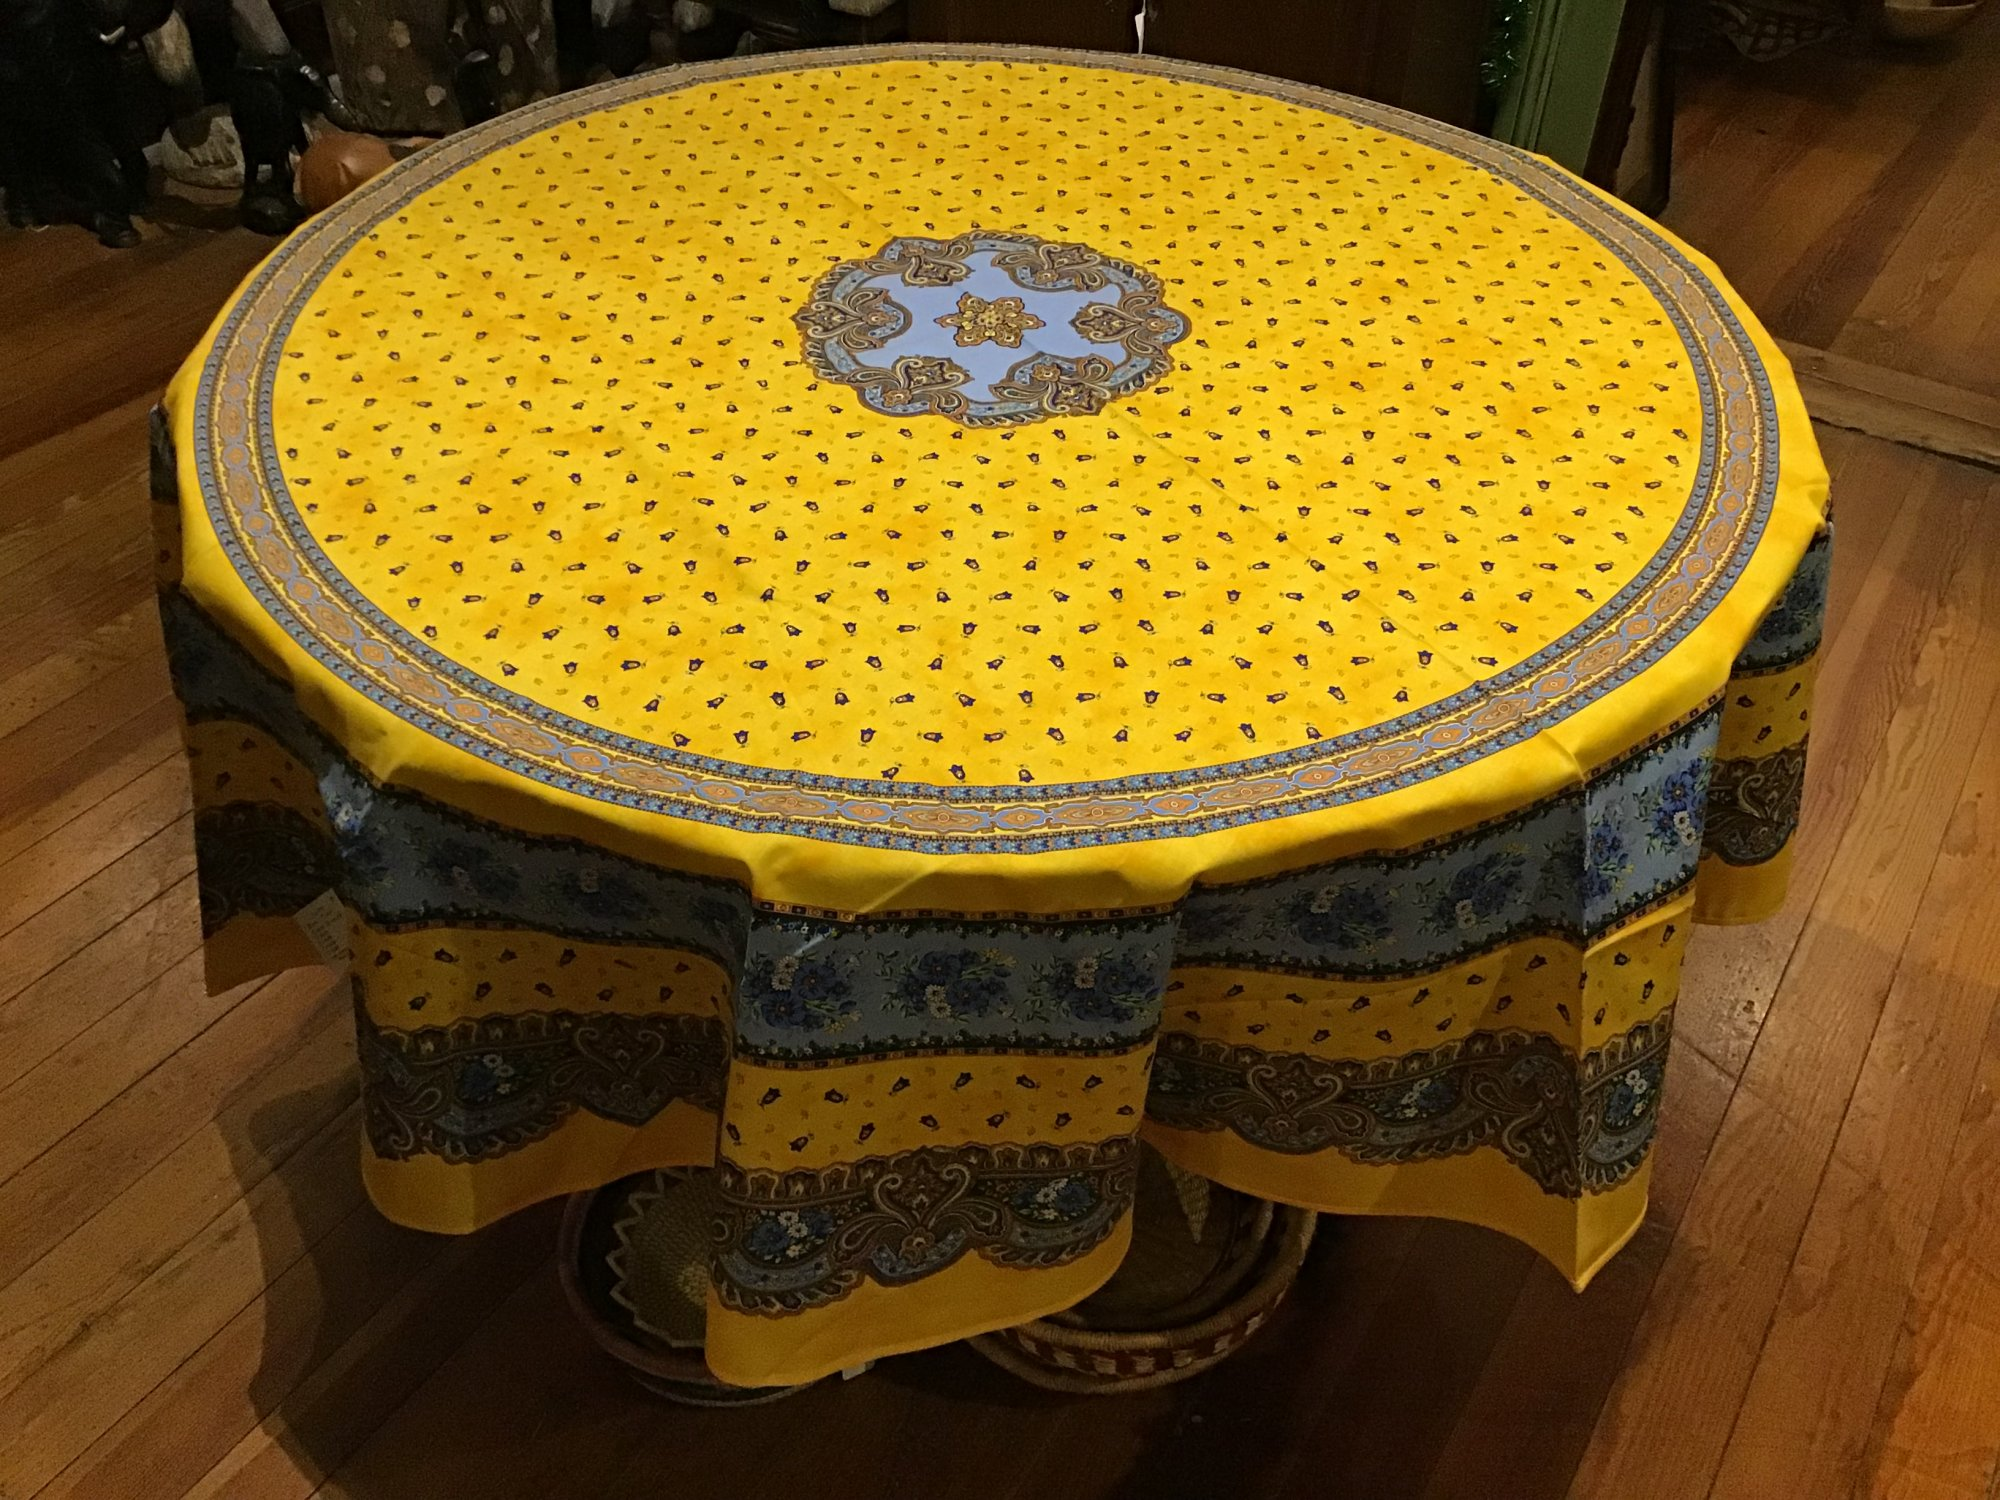 70 French Acrylic-Coated Round Tablecloth Tradition (Yellow)